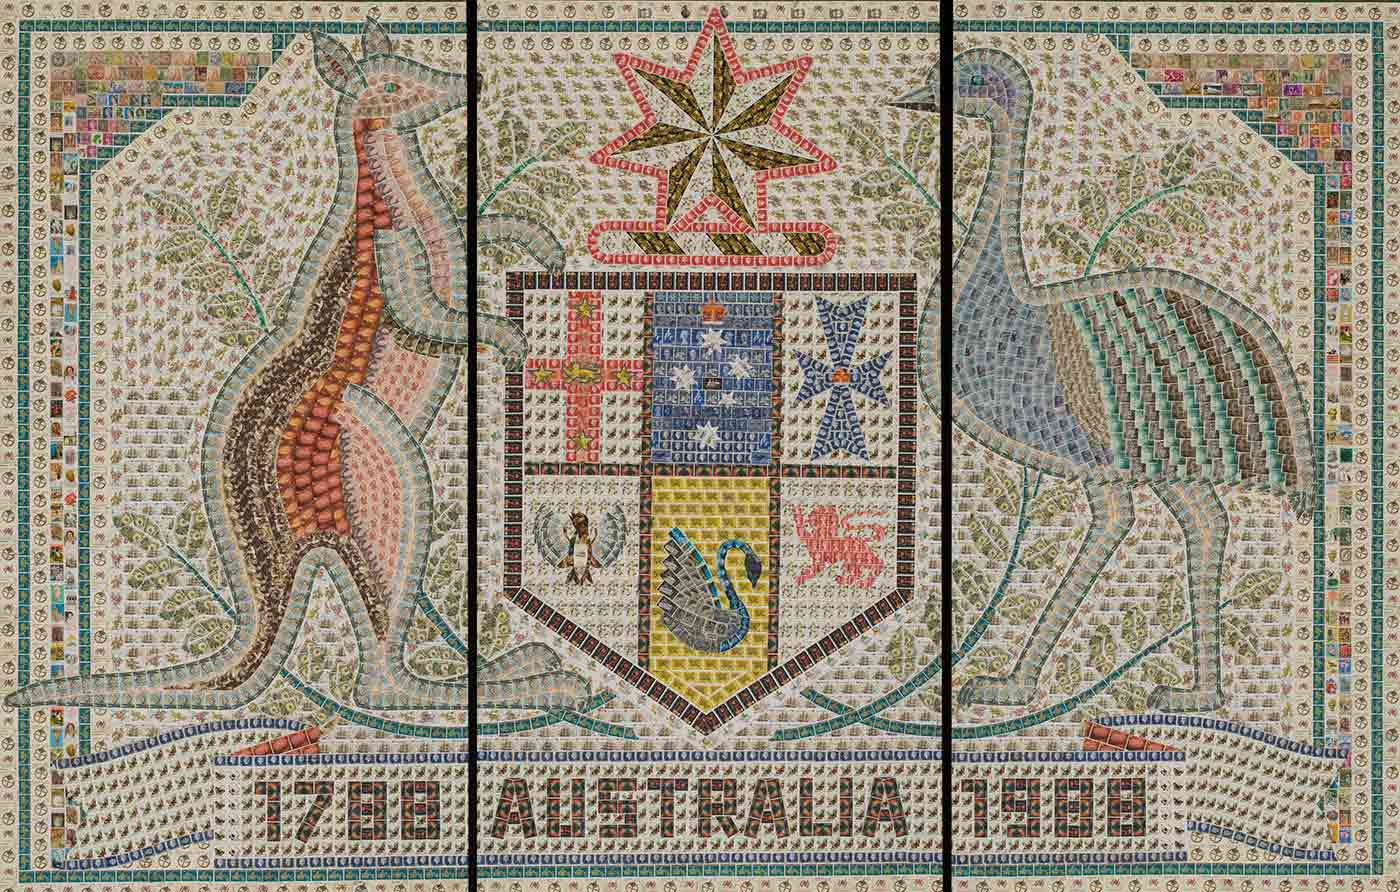 Art work in three sections portraying the Australian coat of arms, made up of postage stamps. The mural has a pale green border and is dominated by images of the kangaroo and emu either side of the state shield and six-sided star. '1788 AUSTRALIA 1988' is written across the bottom, again made of stamps. - click to view larger image